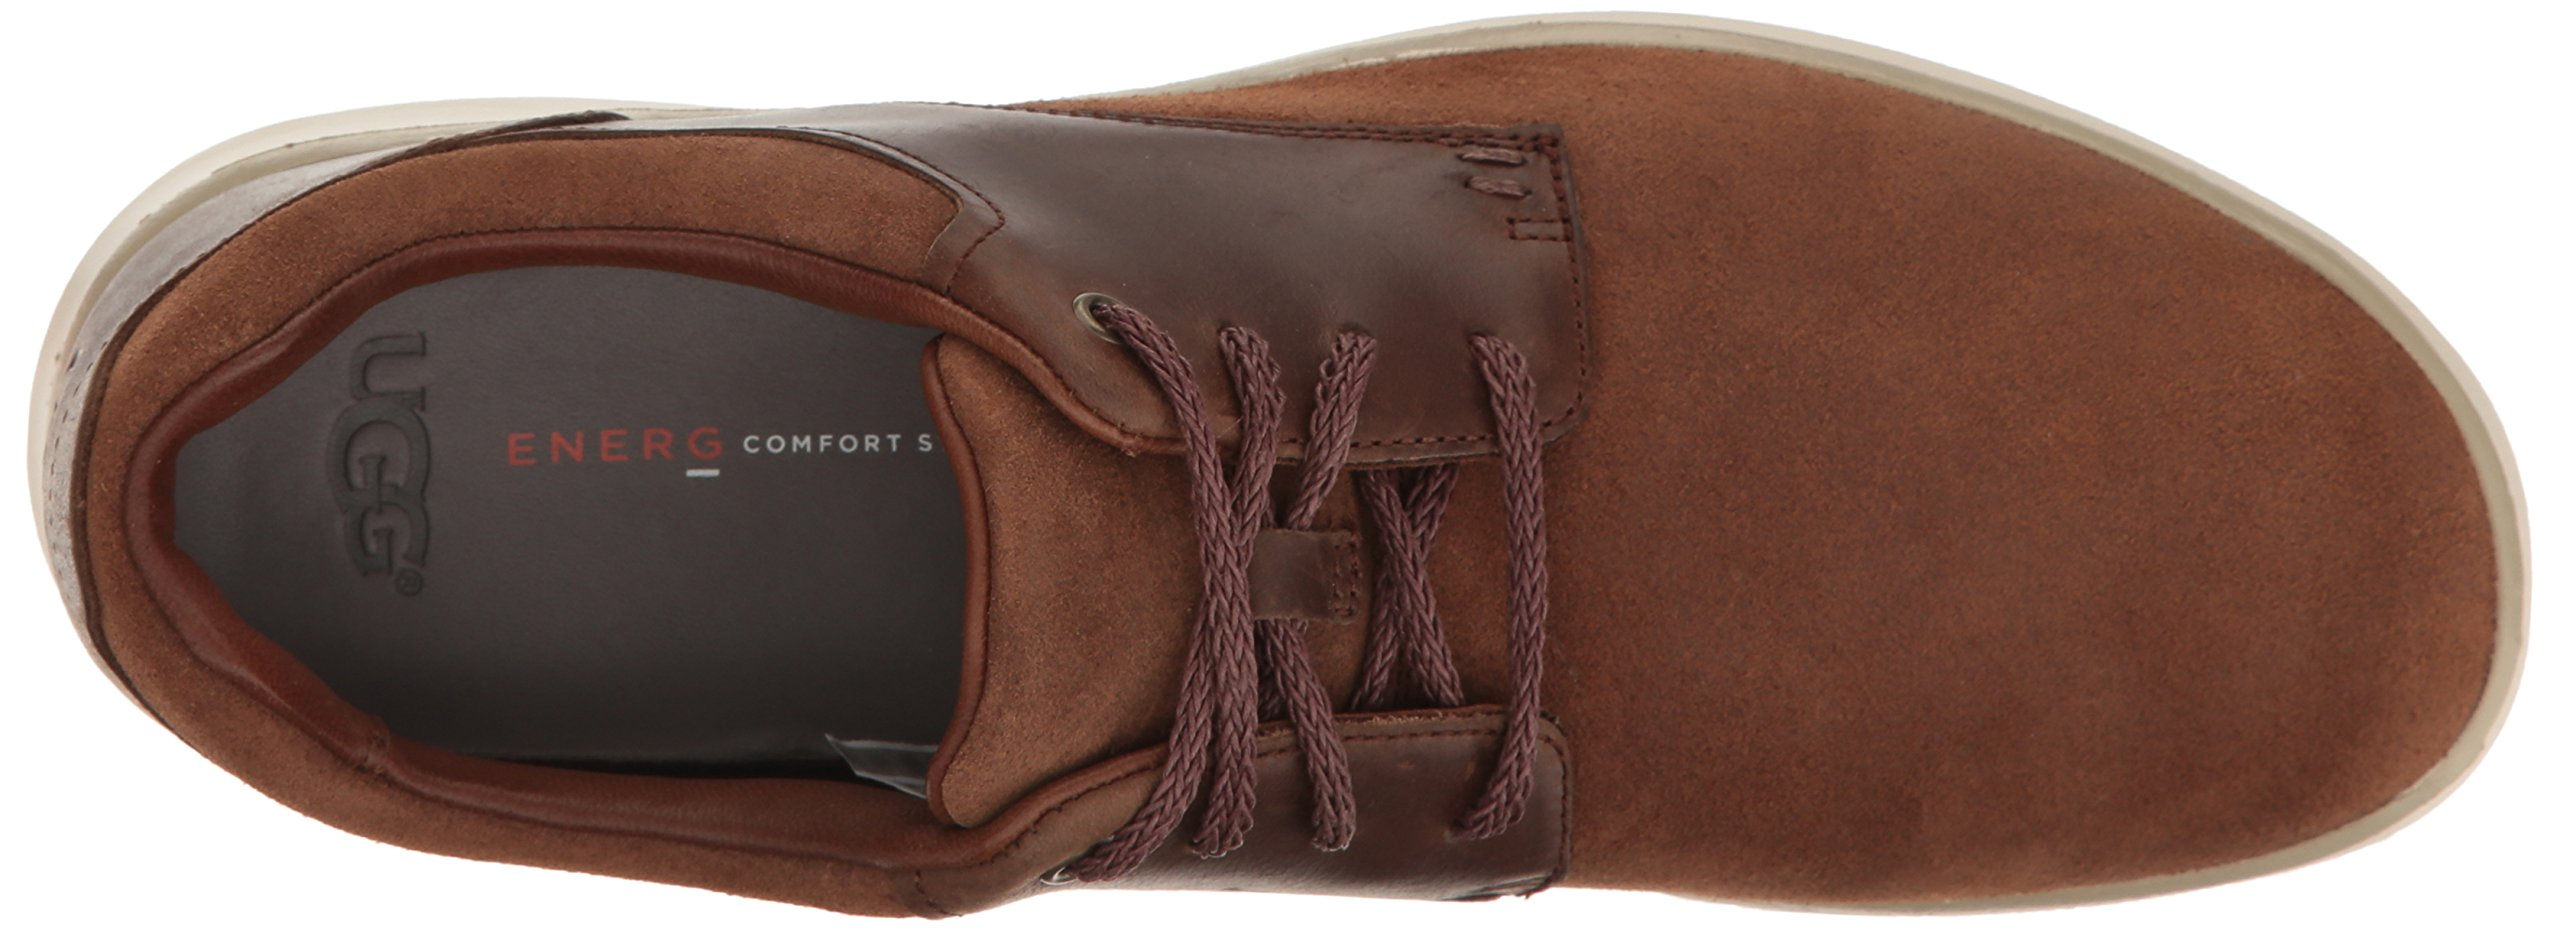 UGG Men's Hepner Fashion Sneaker Chestnut 11.5 M US by UGG (Image #8)